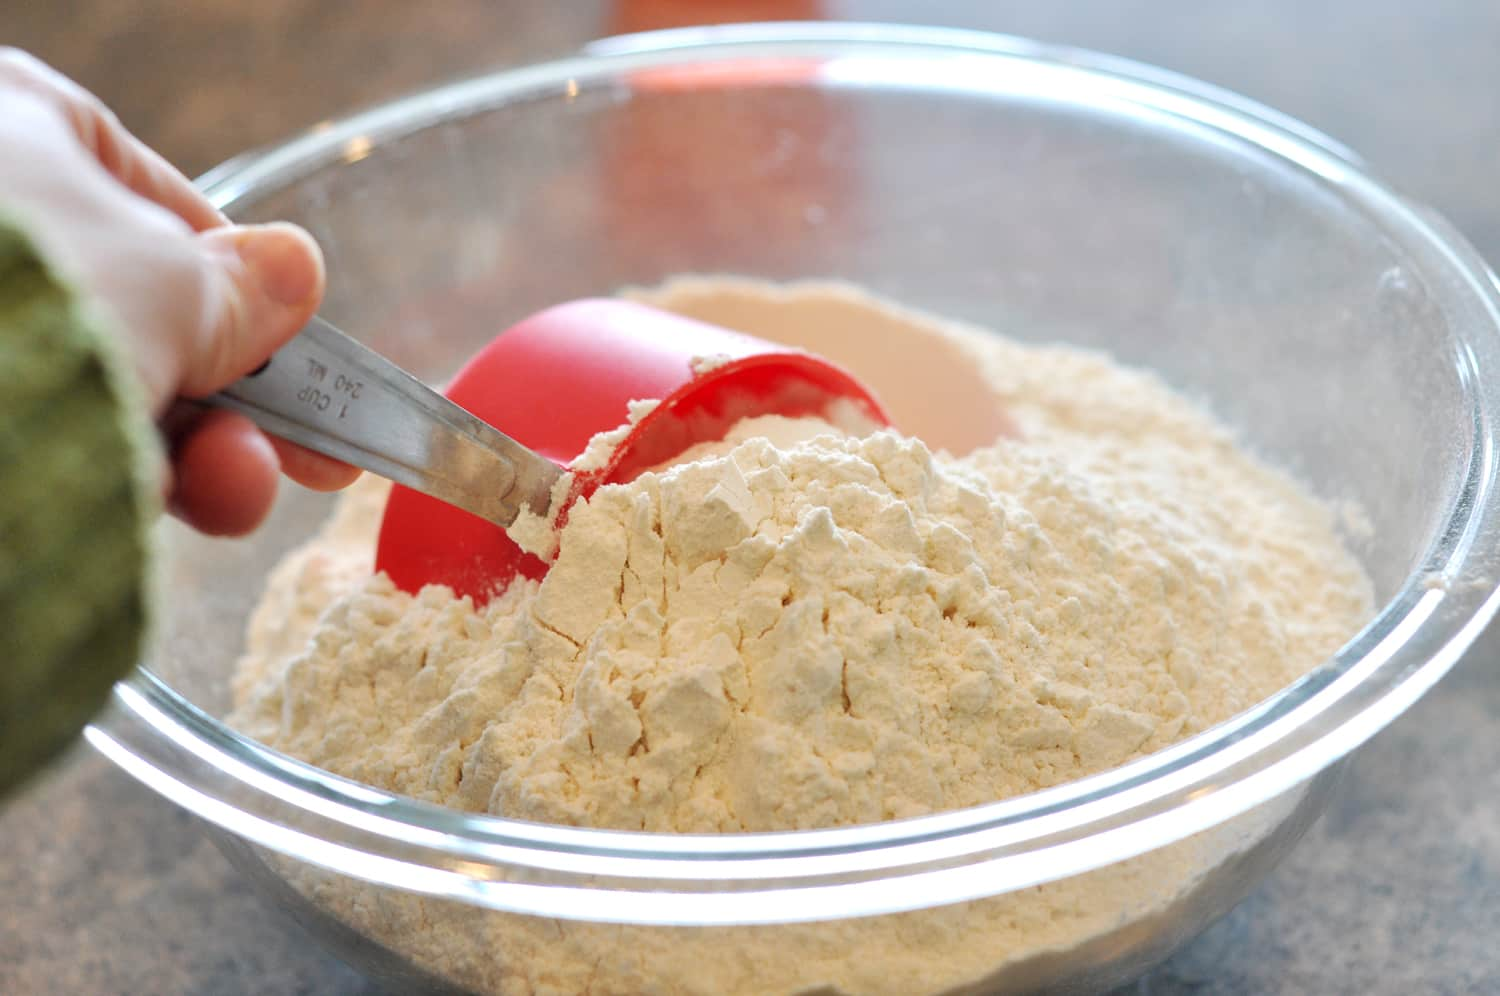 Gently Scoop The Cup Into The Flour.